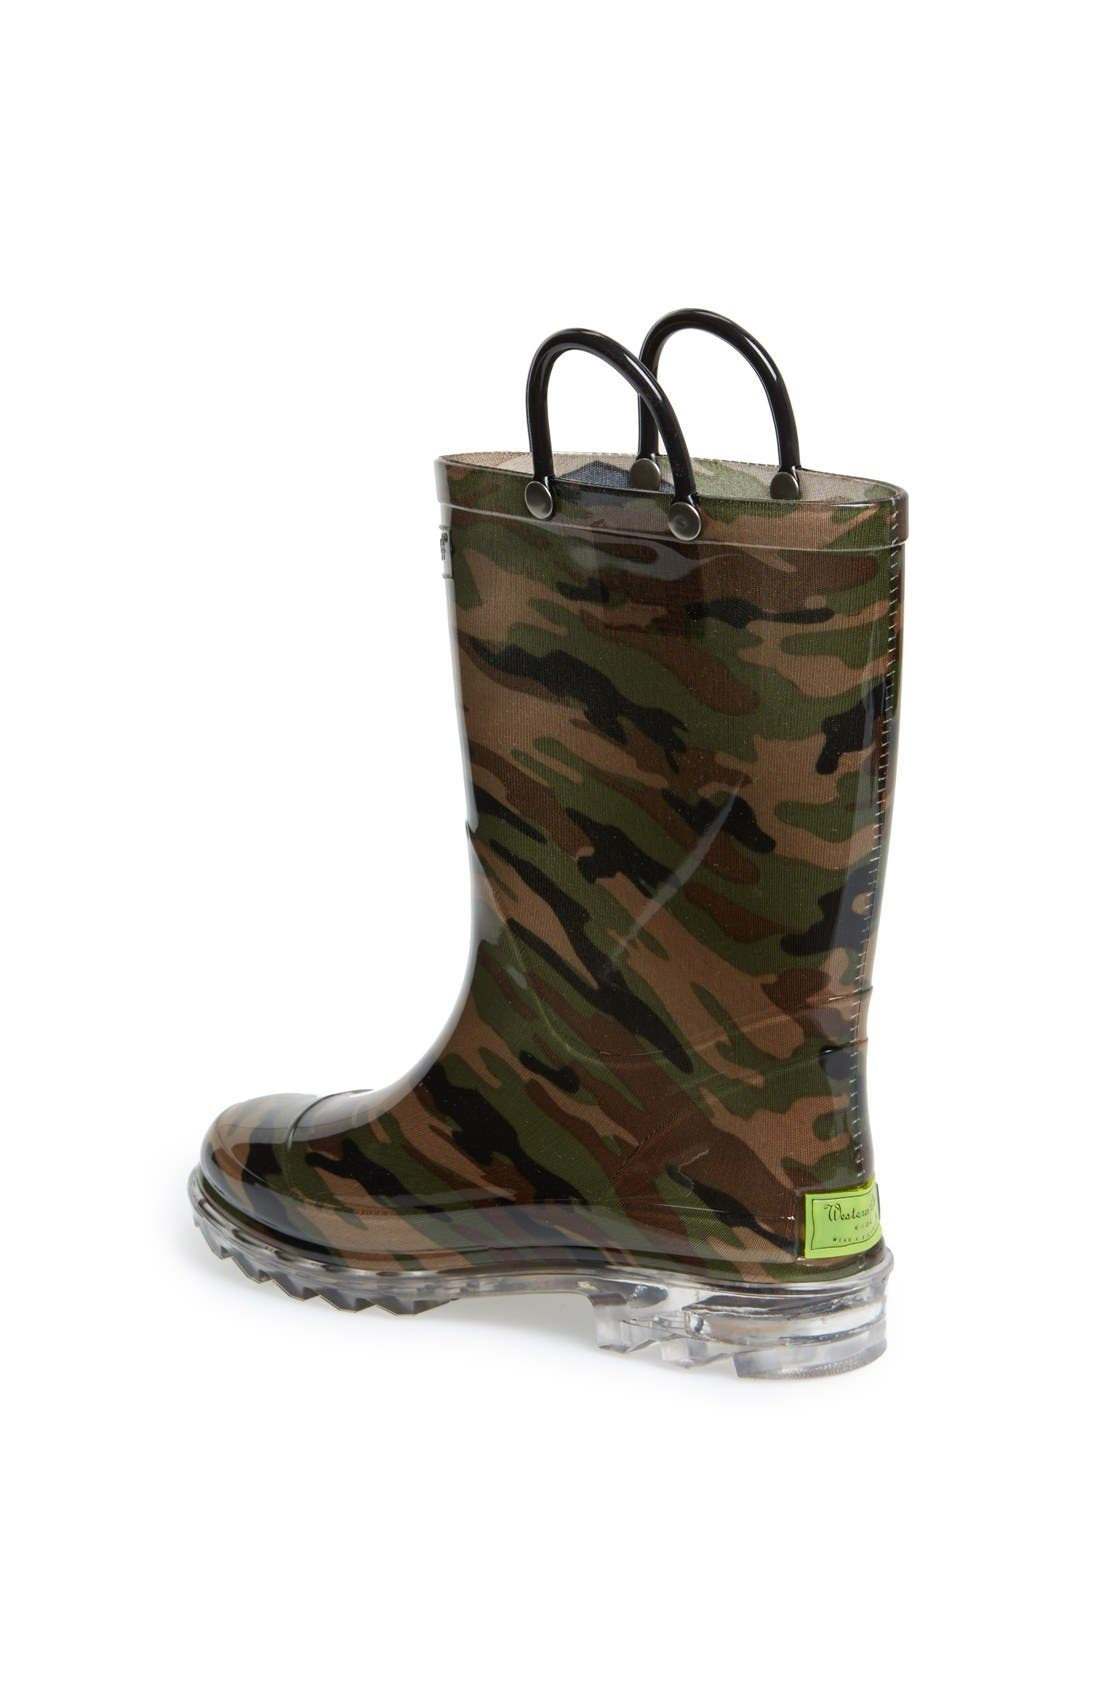 Camo Light-Up Waterproof Rain Boot,                             Alternate thumbnail 2, color,                             GREEN